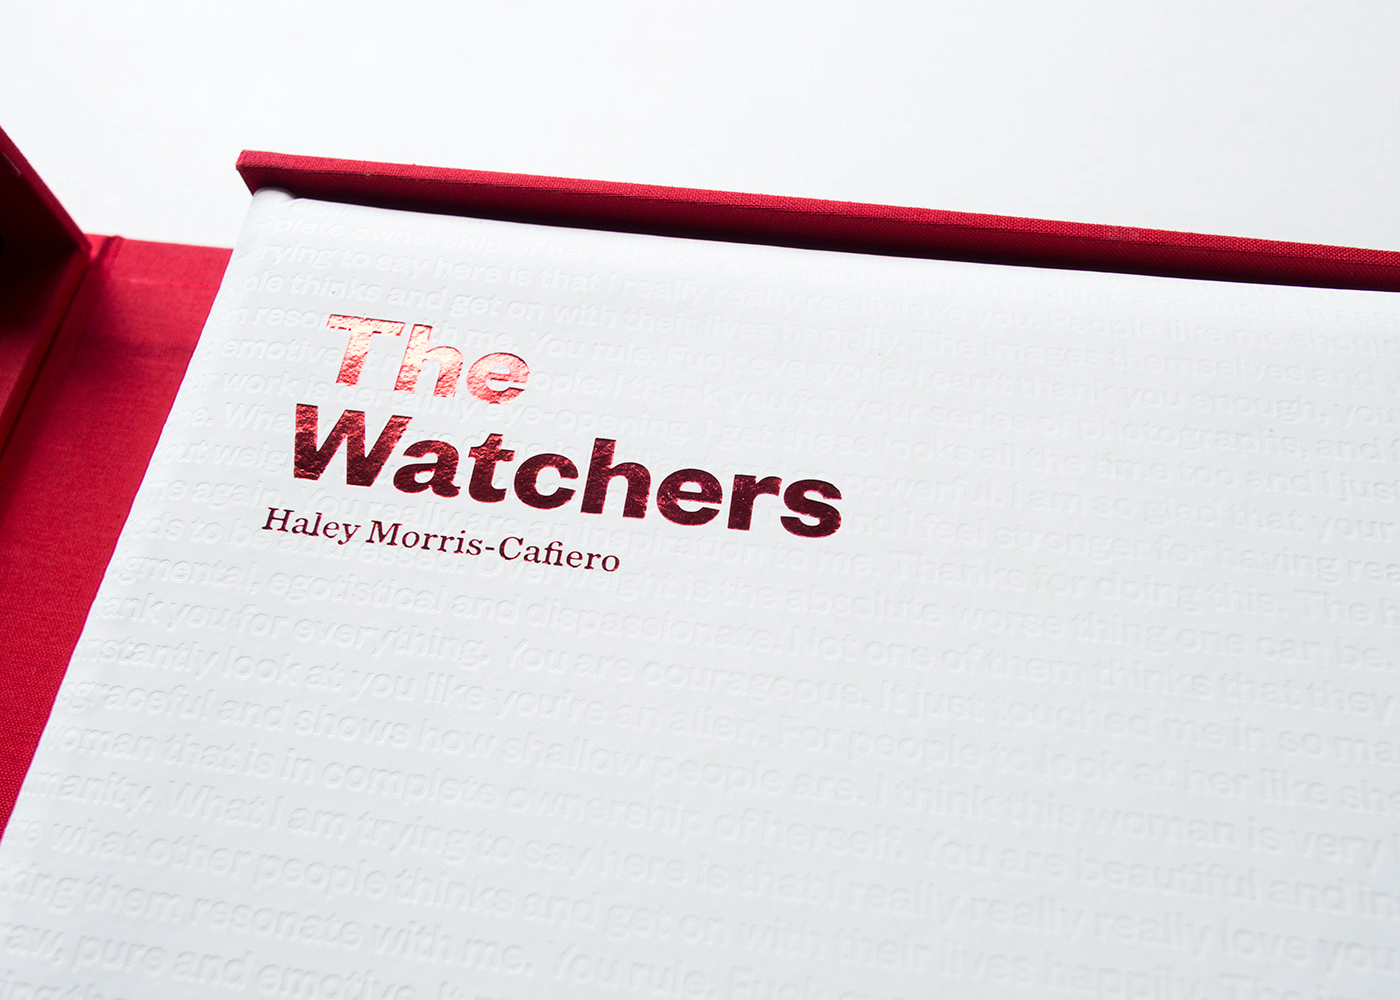 The Watchers by Haley Morris-Cafiero